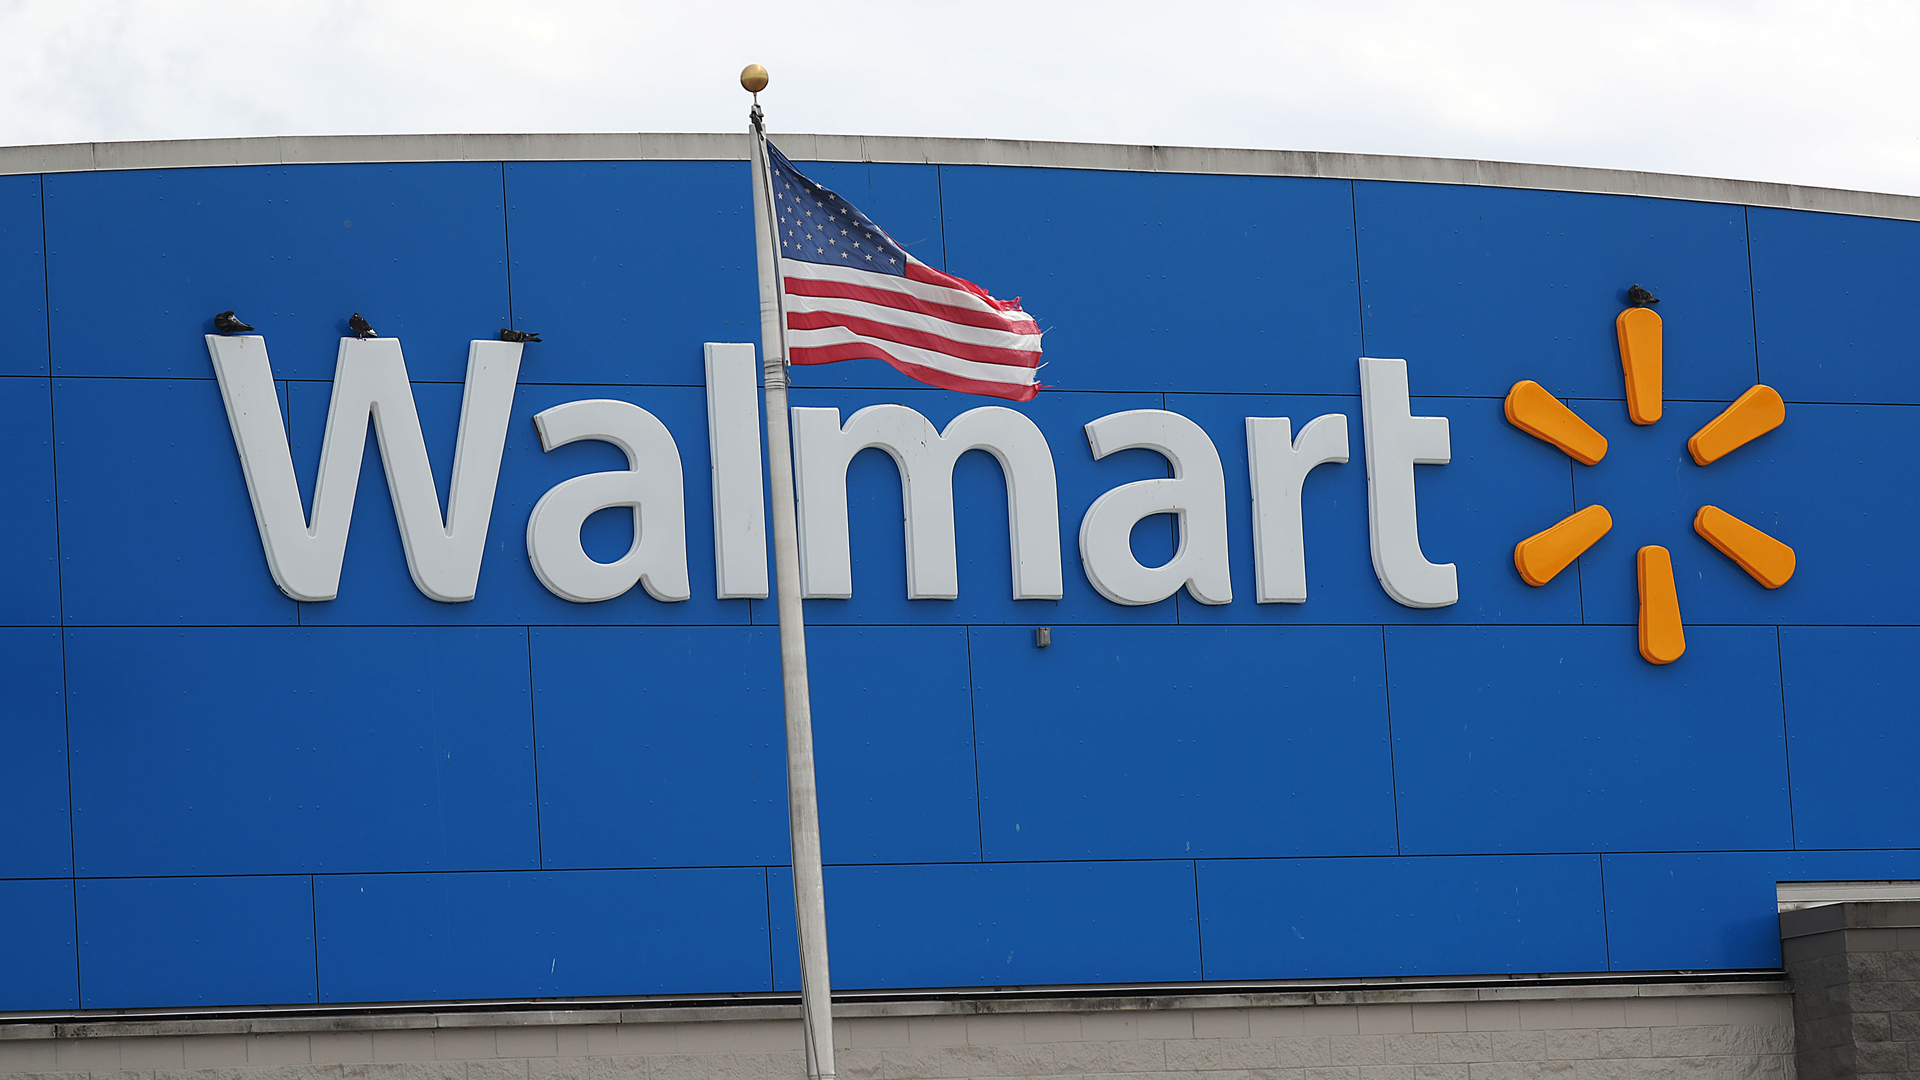 A Walmart store is seen on May 16, 2019 in Miami, Florida. (Credit: by Joe Raedle/Getty Images)